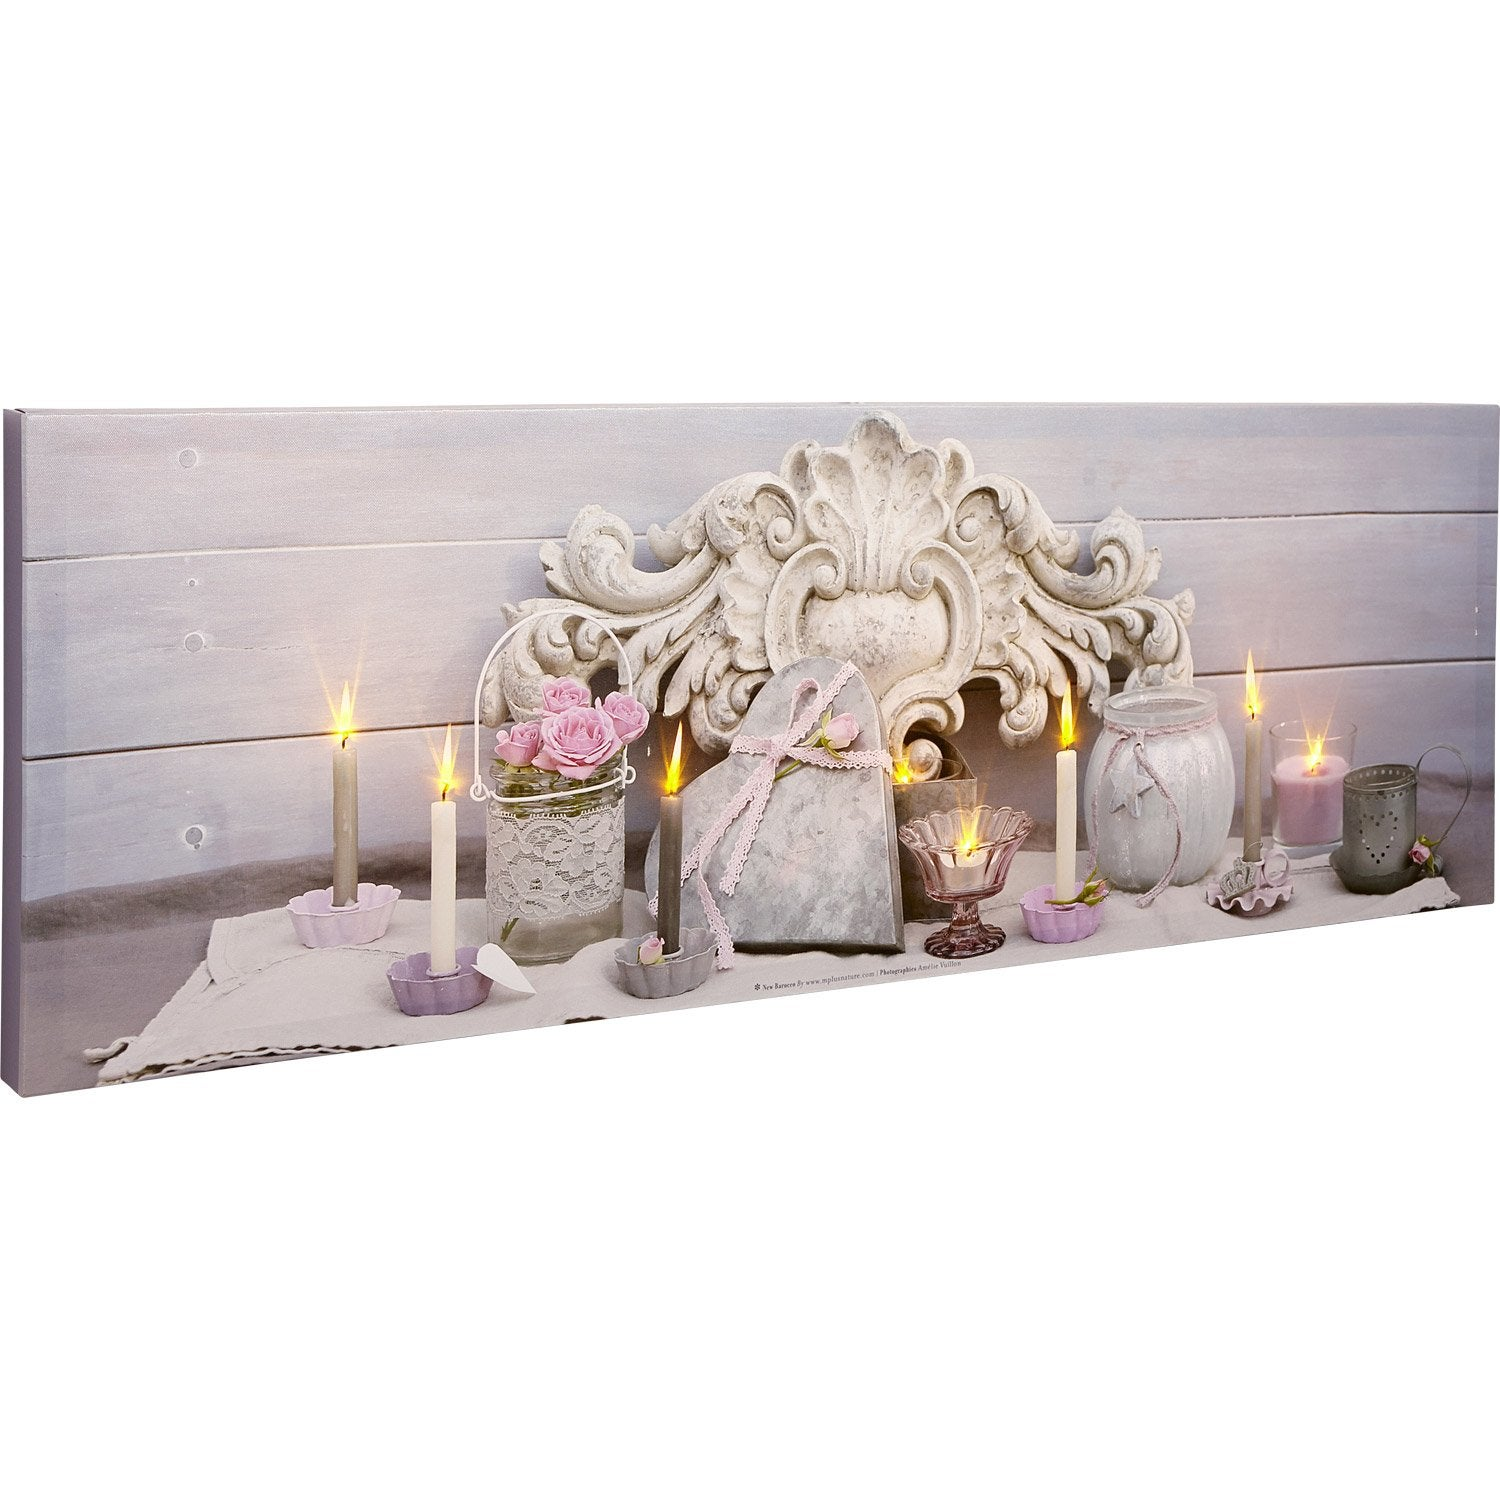 Toile LED Coeur, roses roses, bougies, pots, 90x30 cm